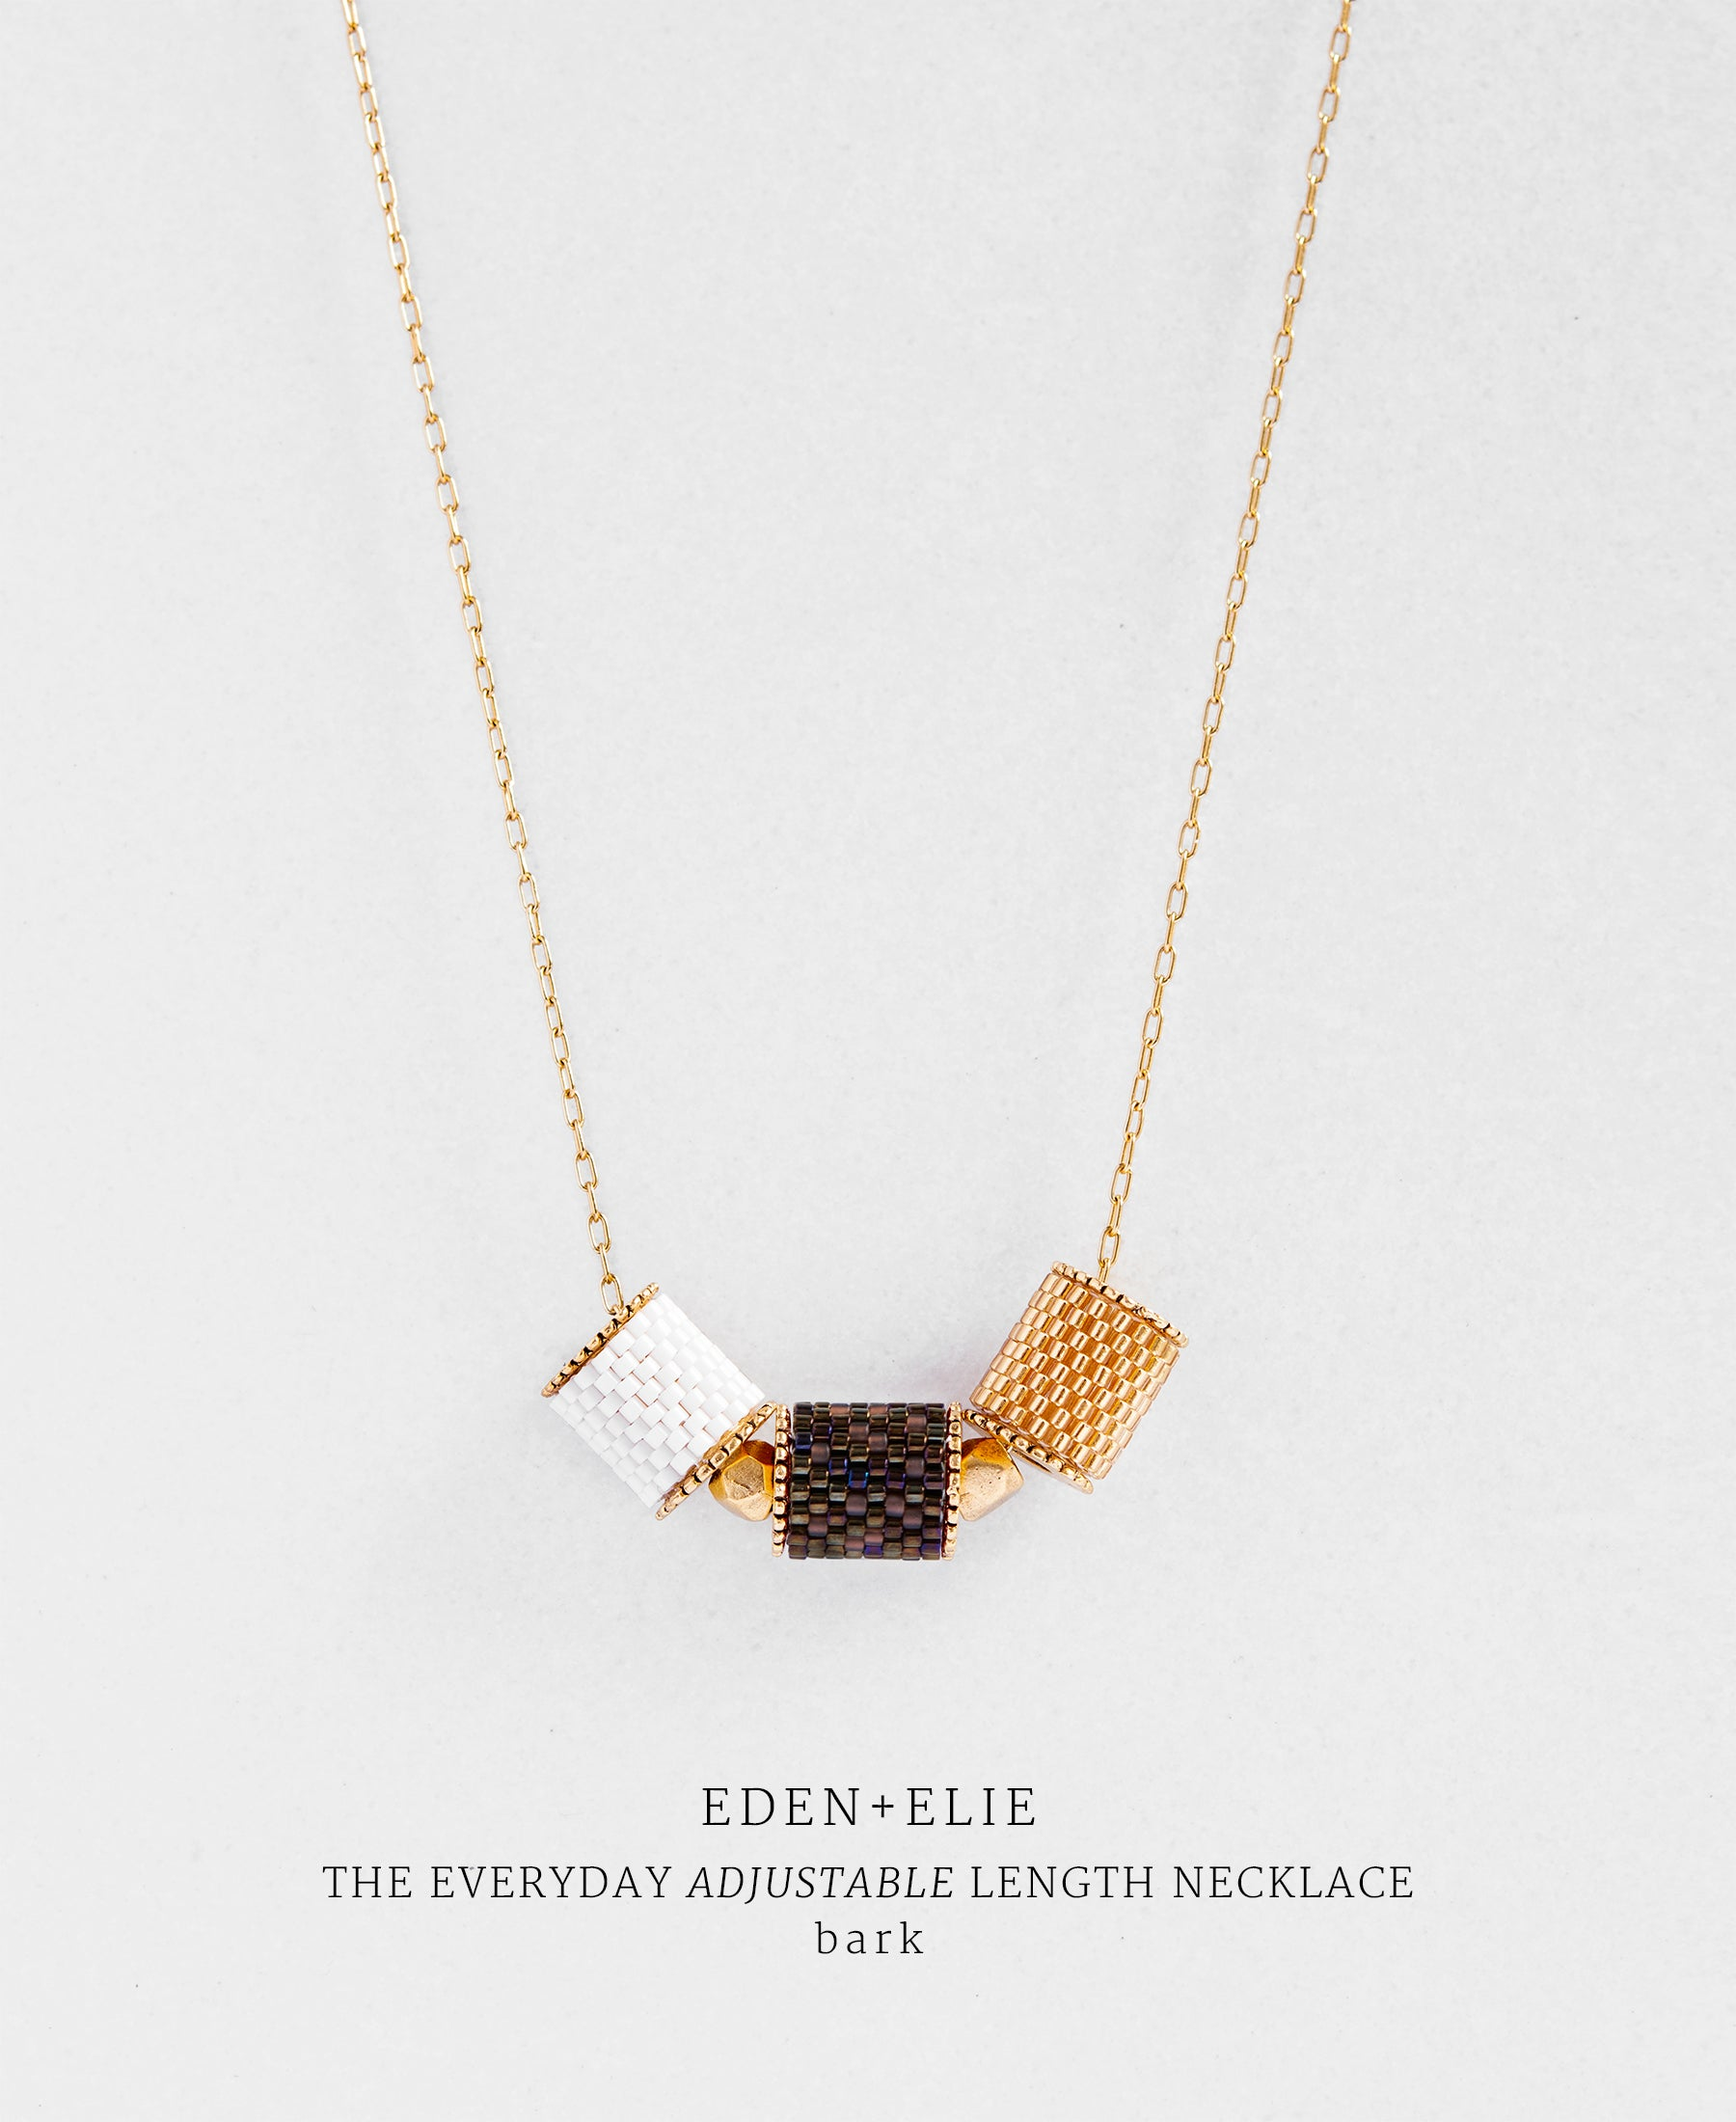 EDEN + ELIE Everyday adjustable length necklace - bark brown